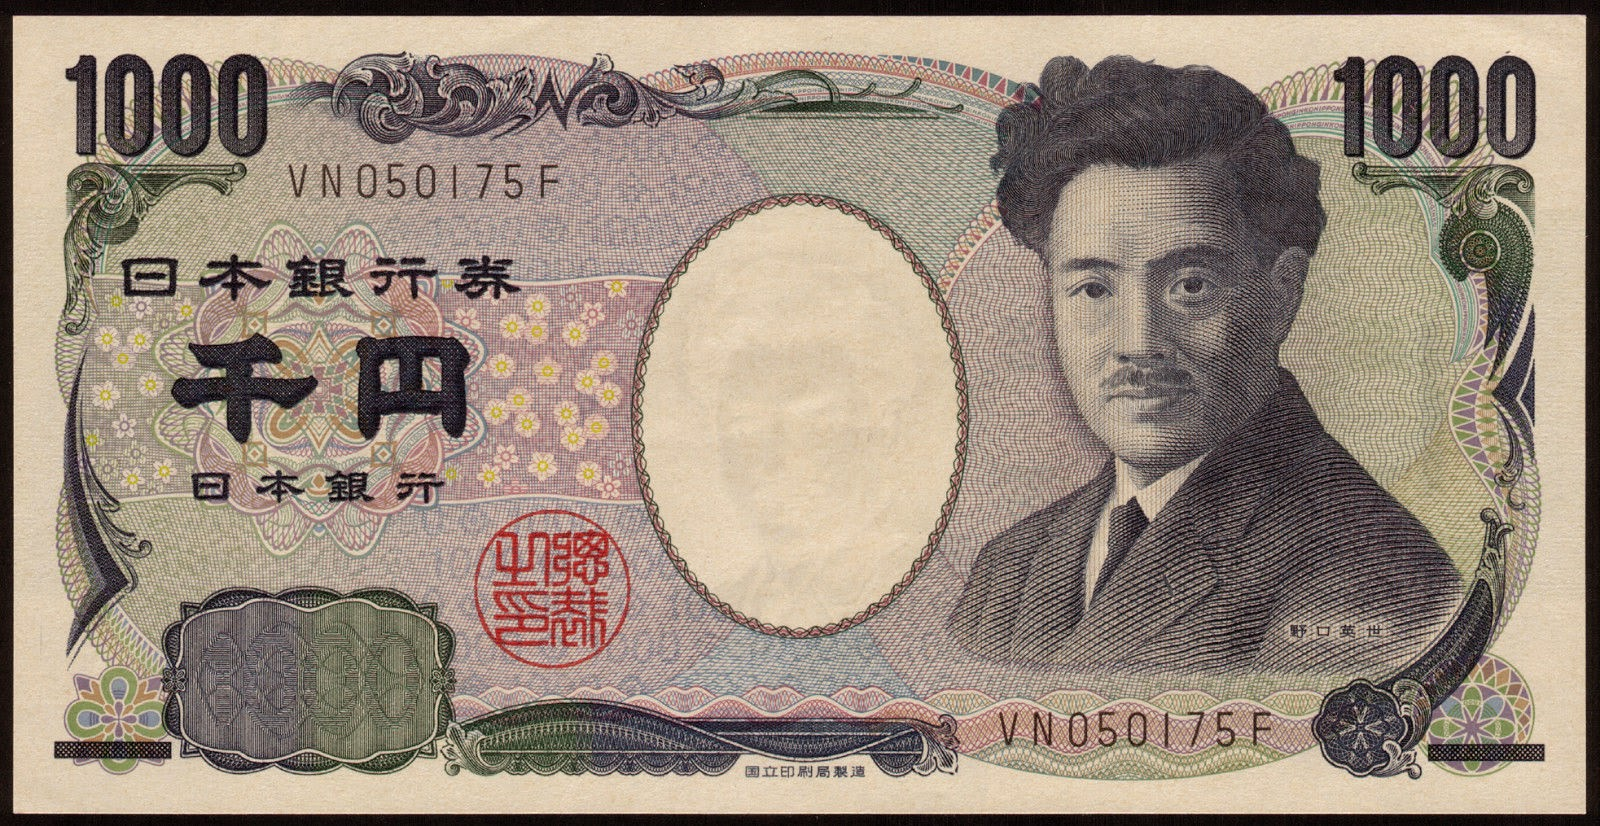 Hidden Symbols & Meanings on Currencies Around the World